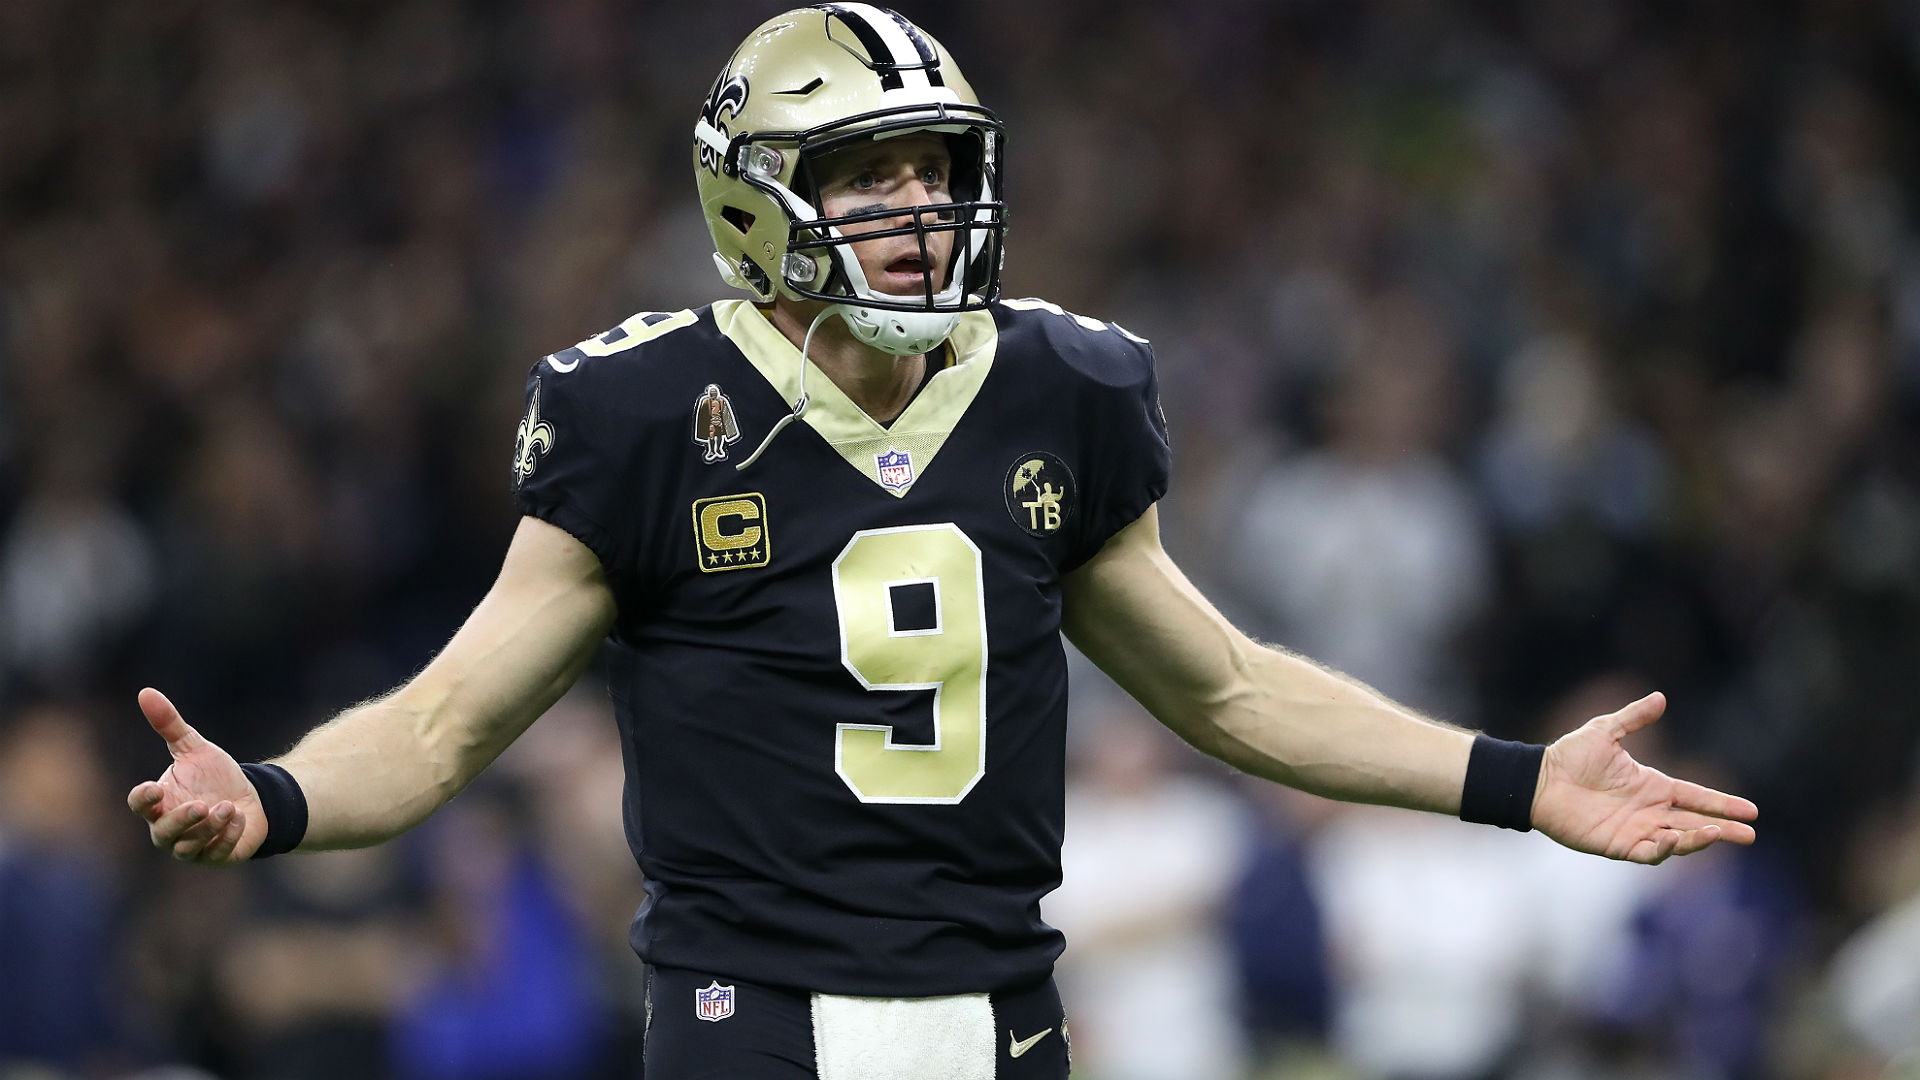 Saints victimized by another botched officiating call: 'That can't happen'